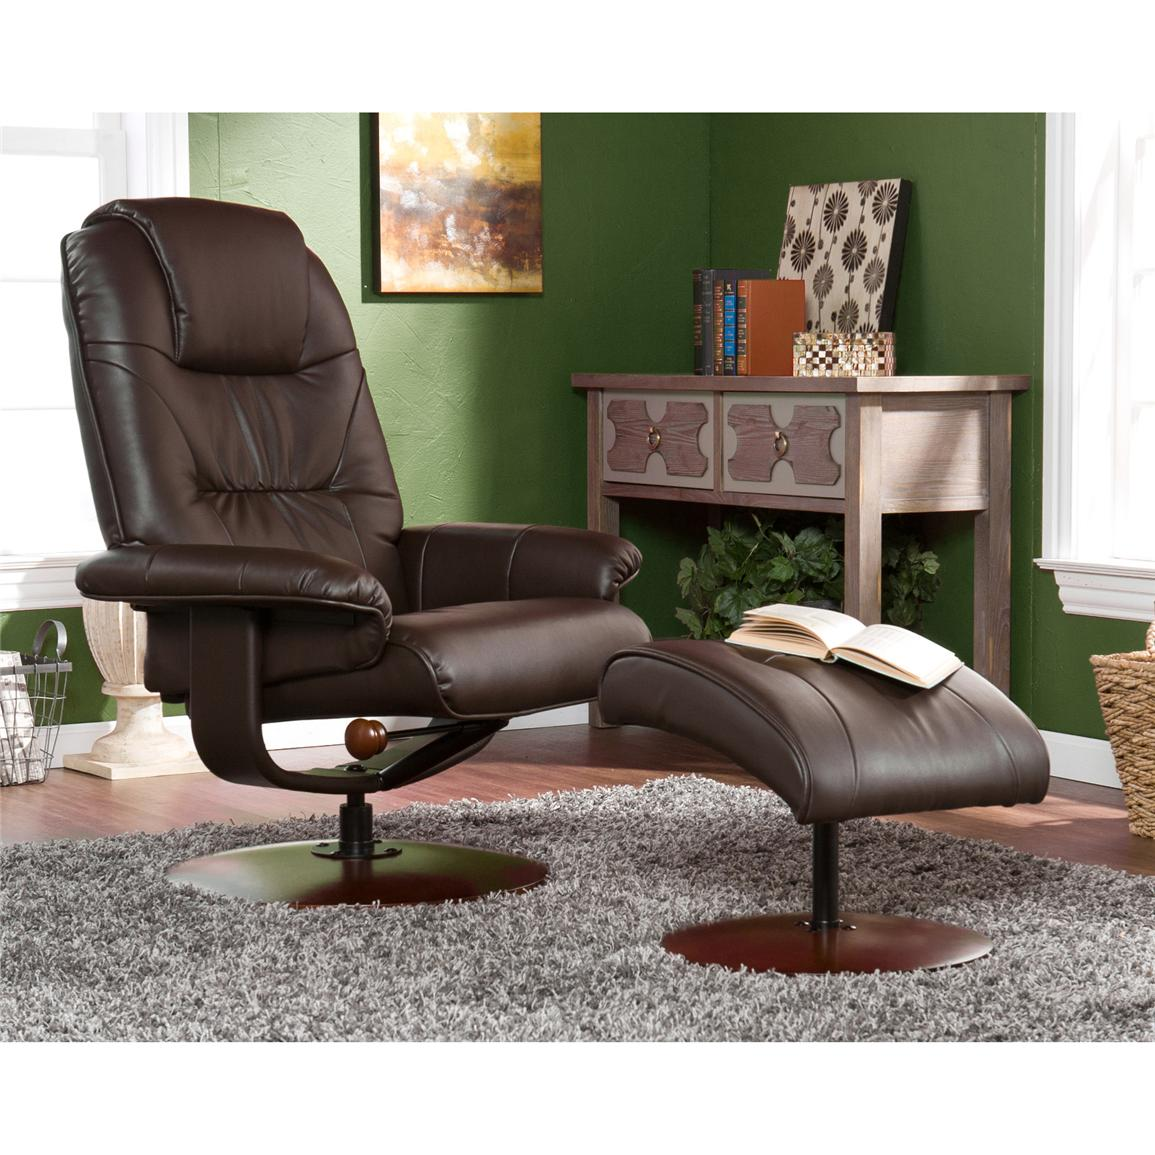 Parrish Leather Recliner and Ottoman, Cafe Brown